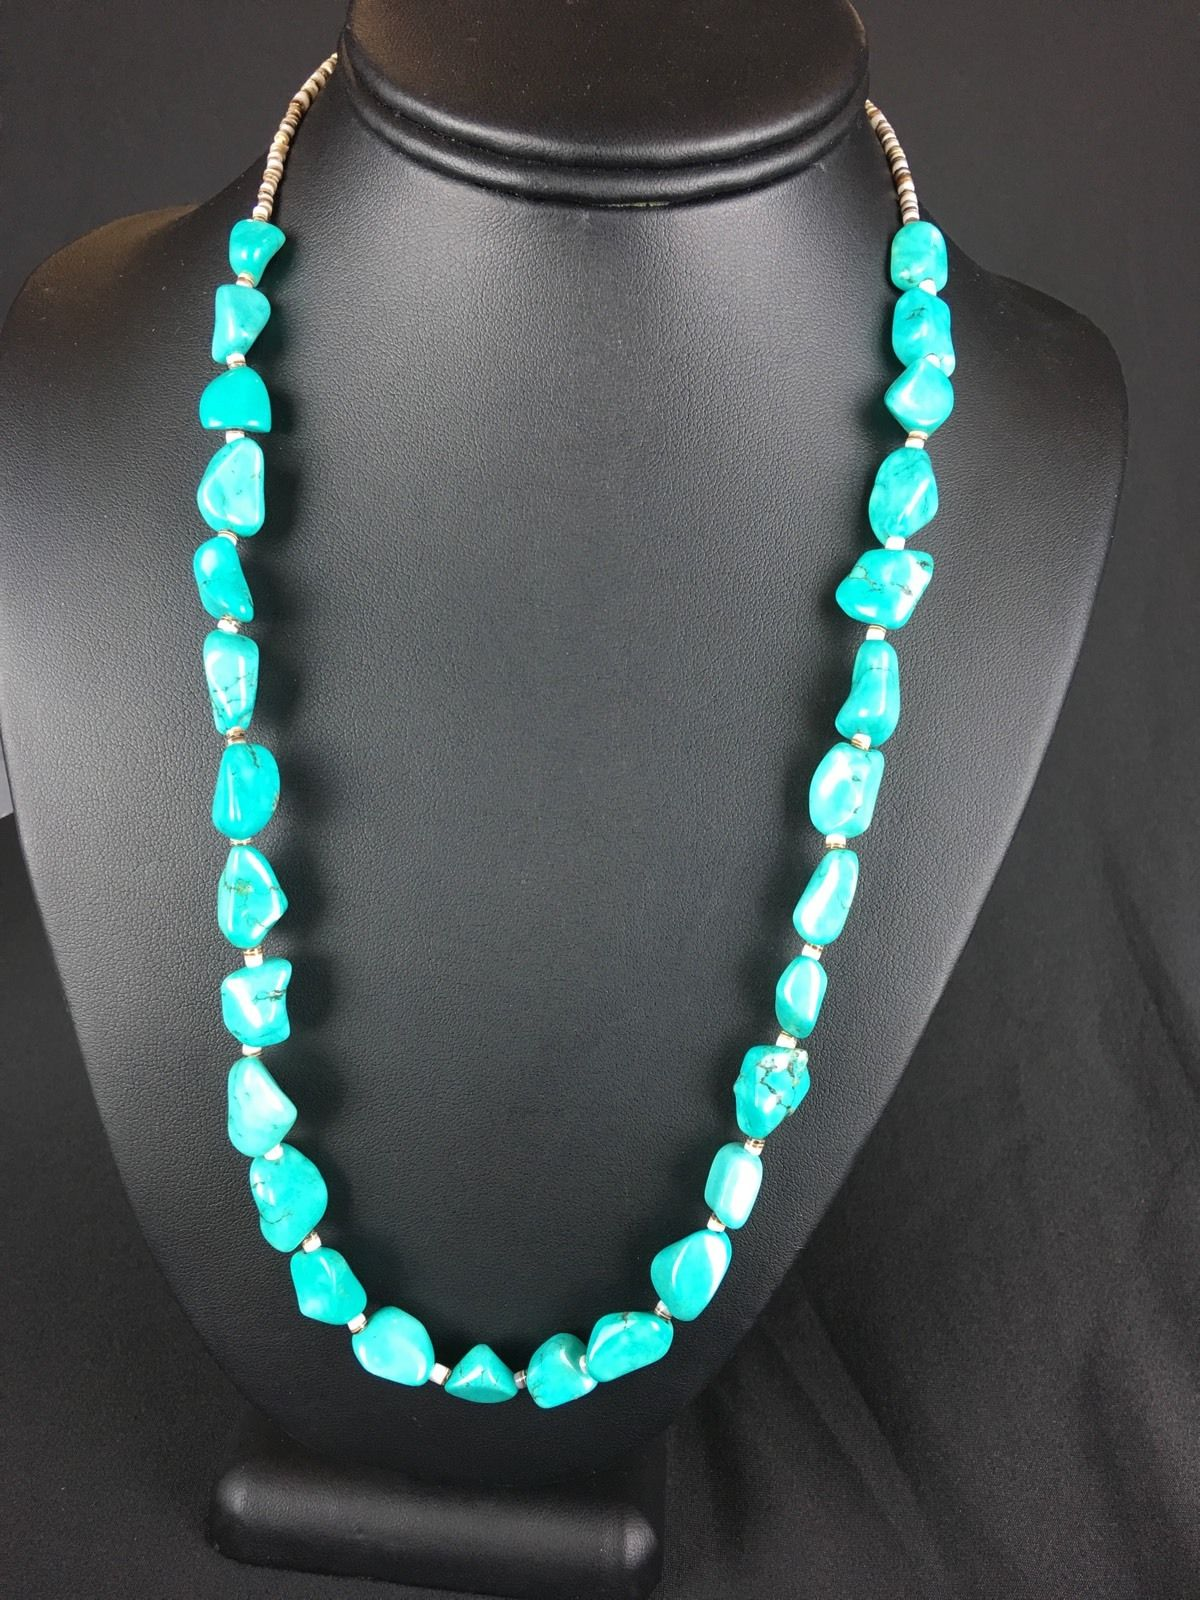 Native American Turquoise Nuggets Sterling Silver Necklace by Masha